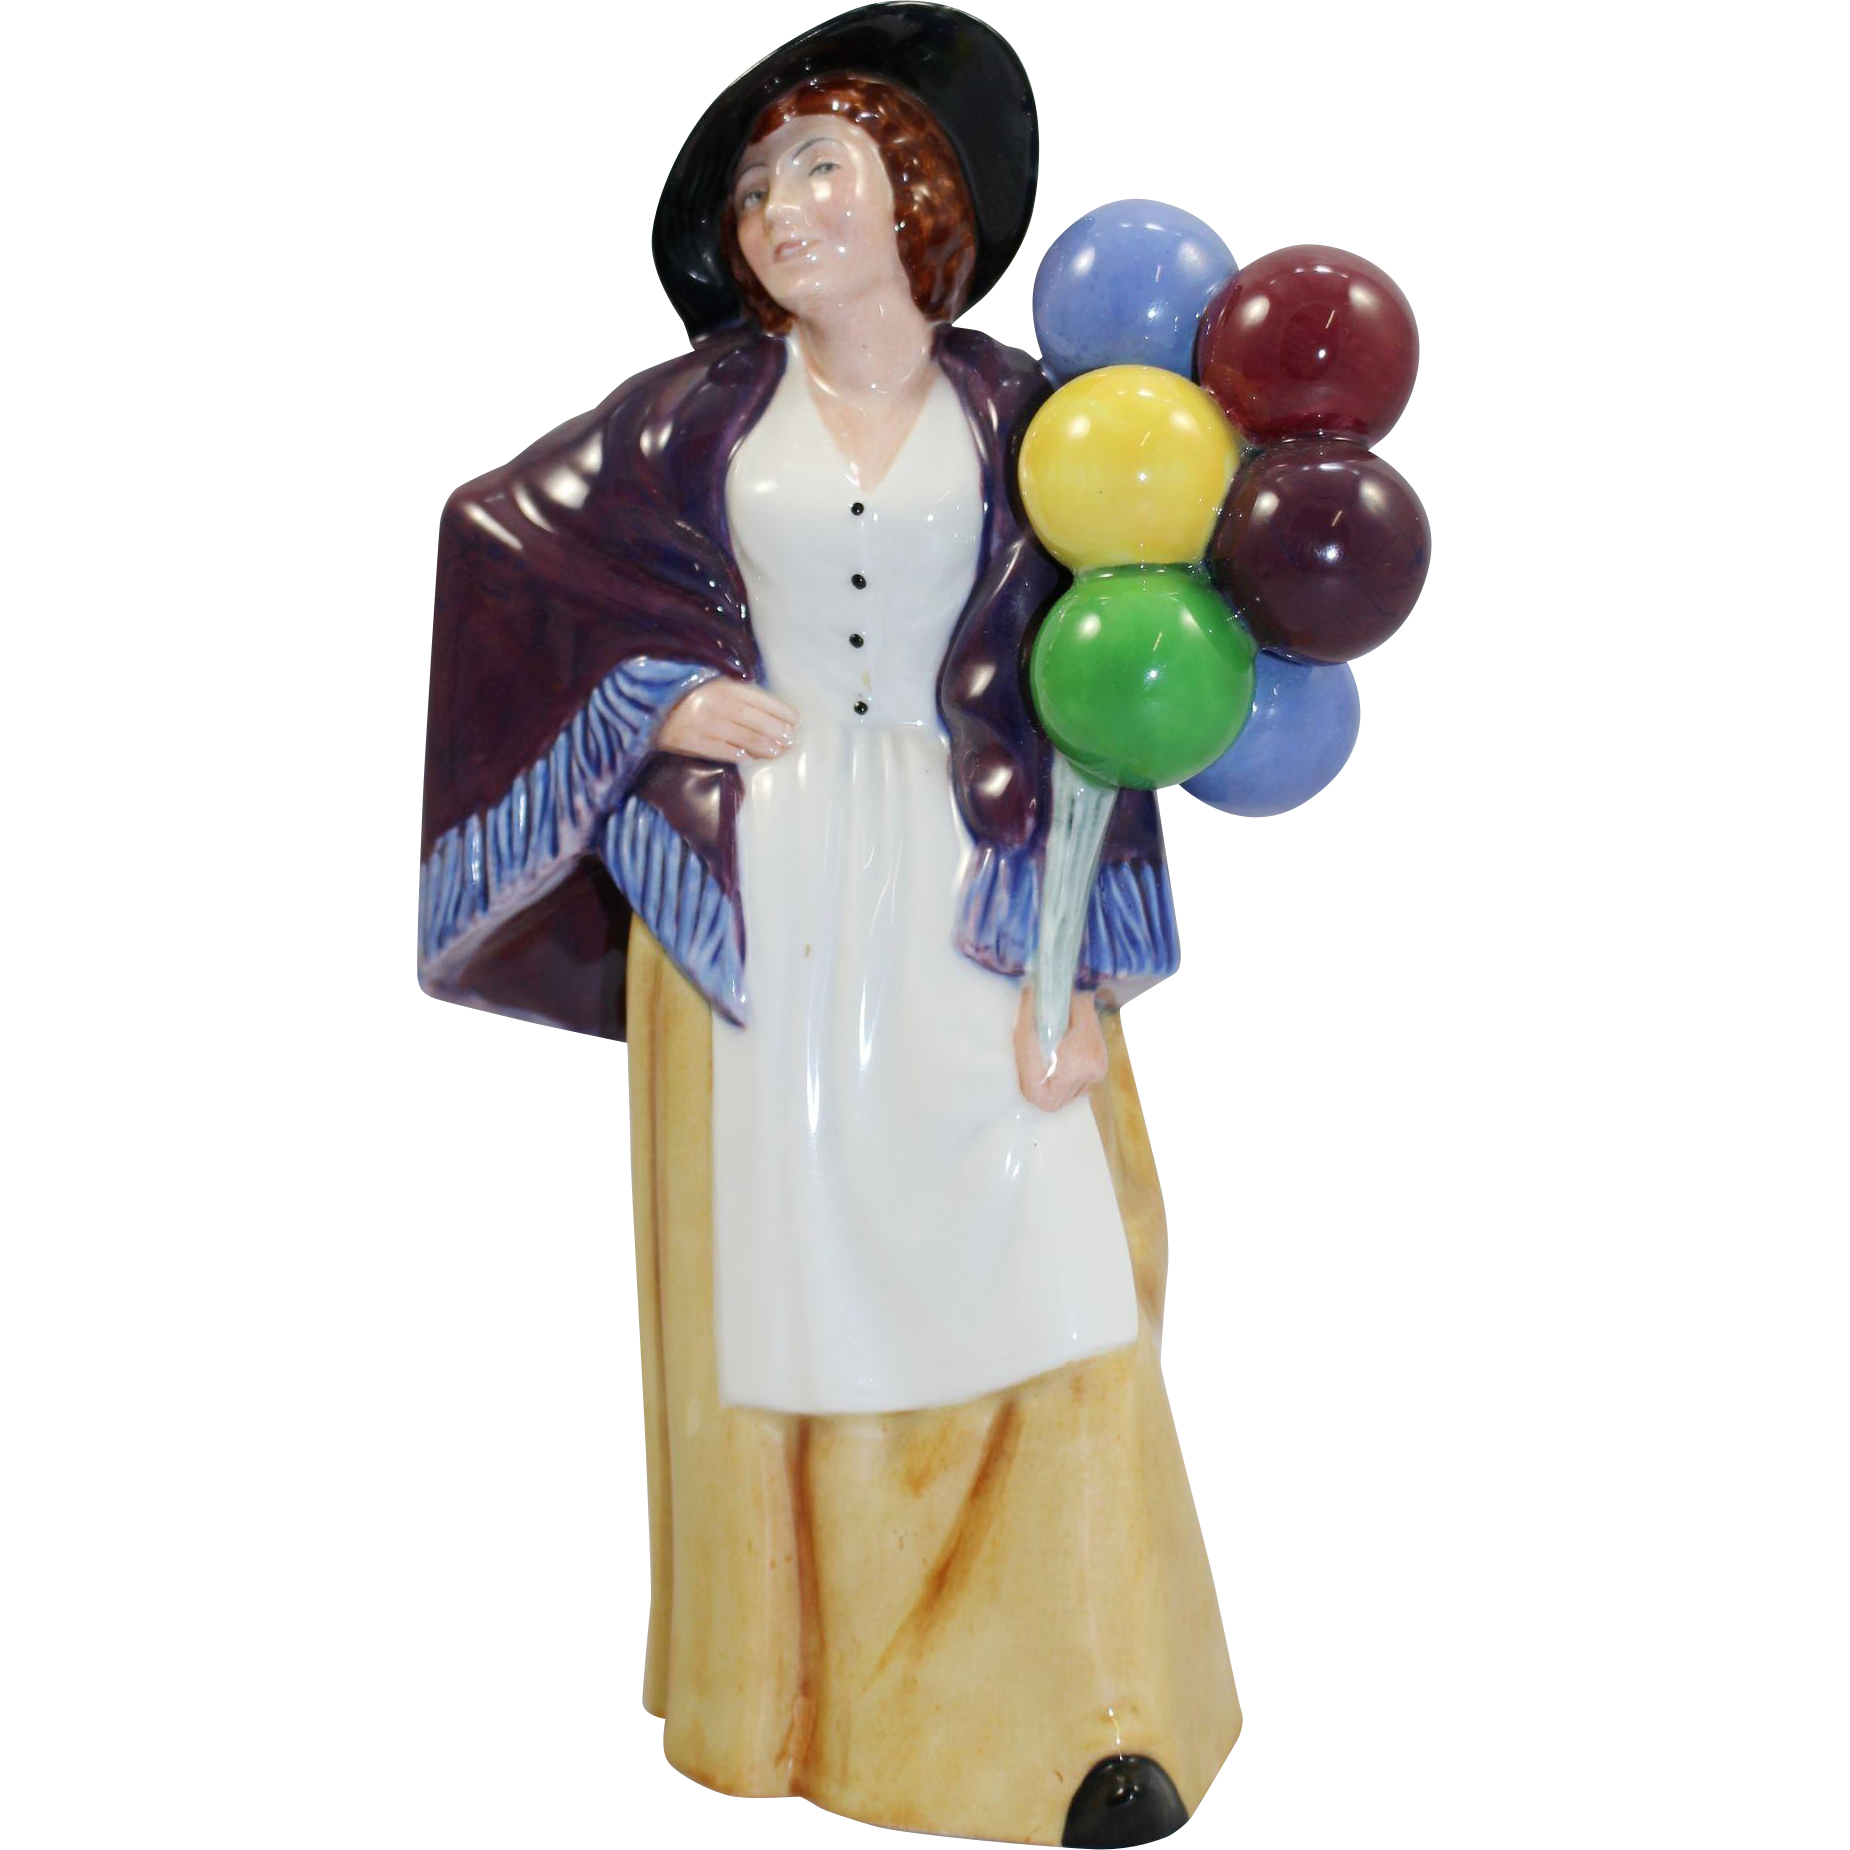 Royal doulton figurine quot balloon lady quot hn 2935 from treasure trove worcester on ruby lane